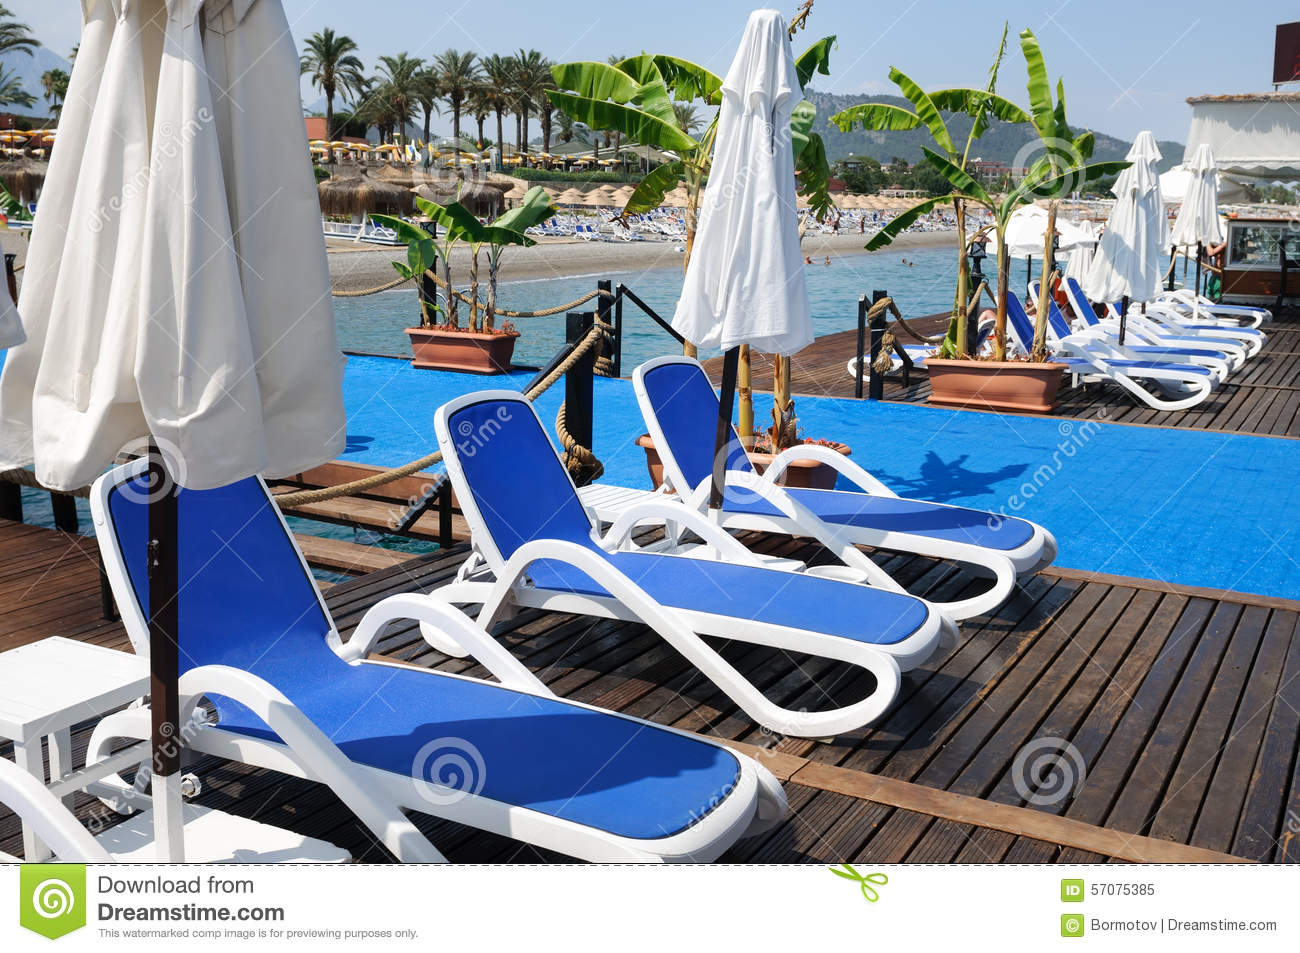 Chaise lounges from the sun on a beach stock photo image for Beach chaise longue